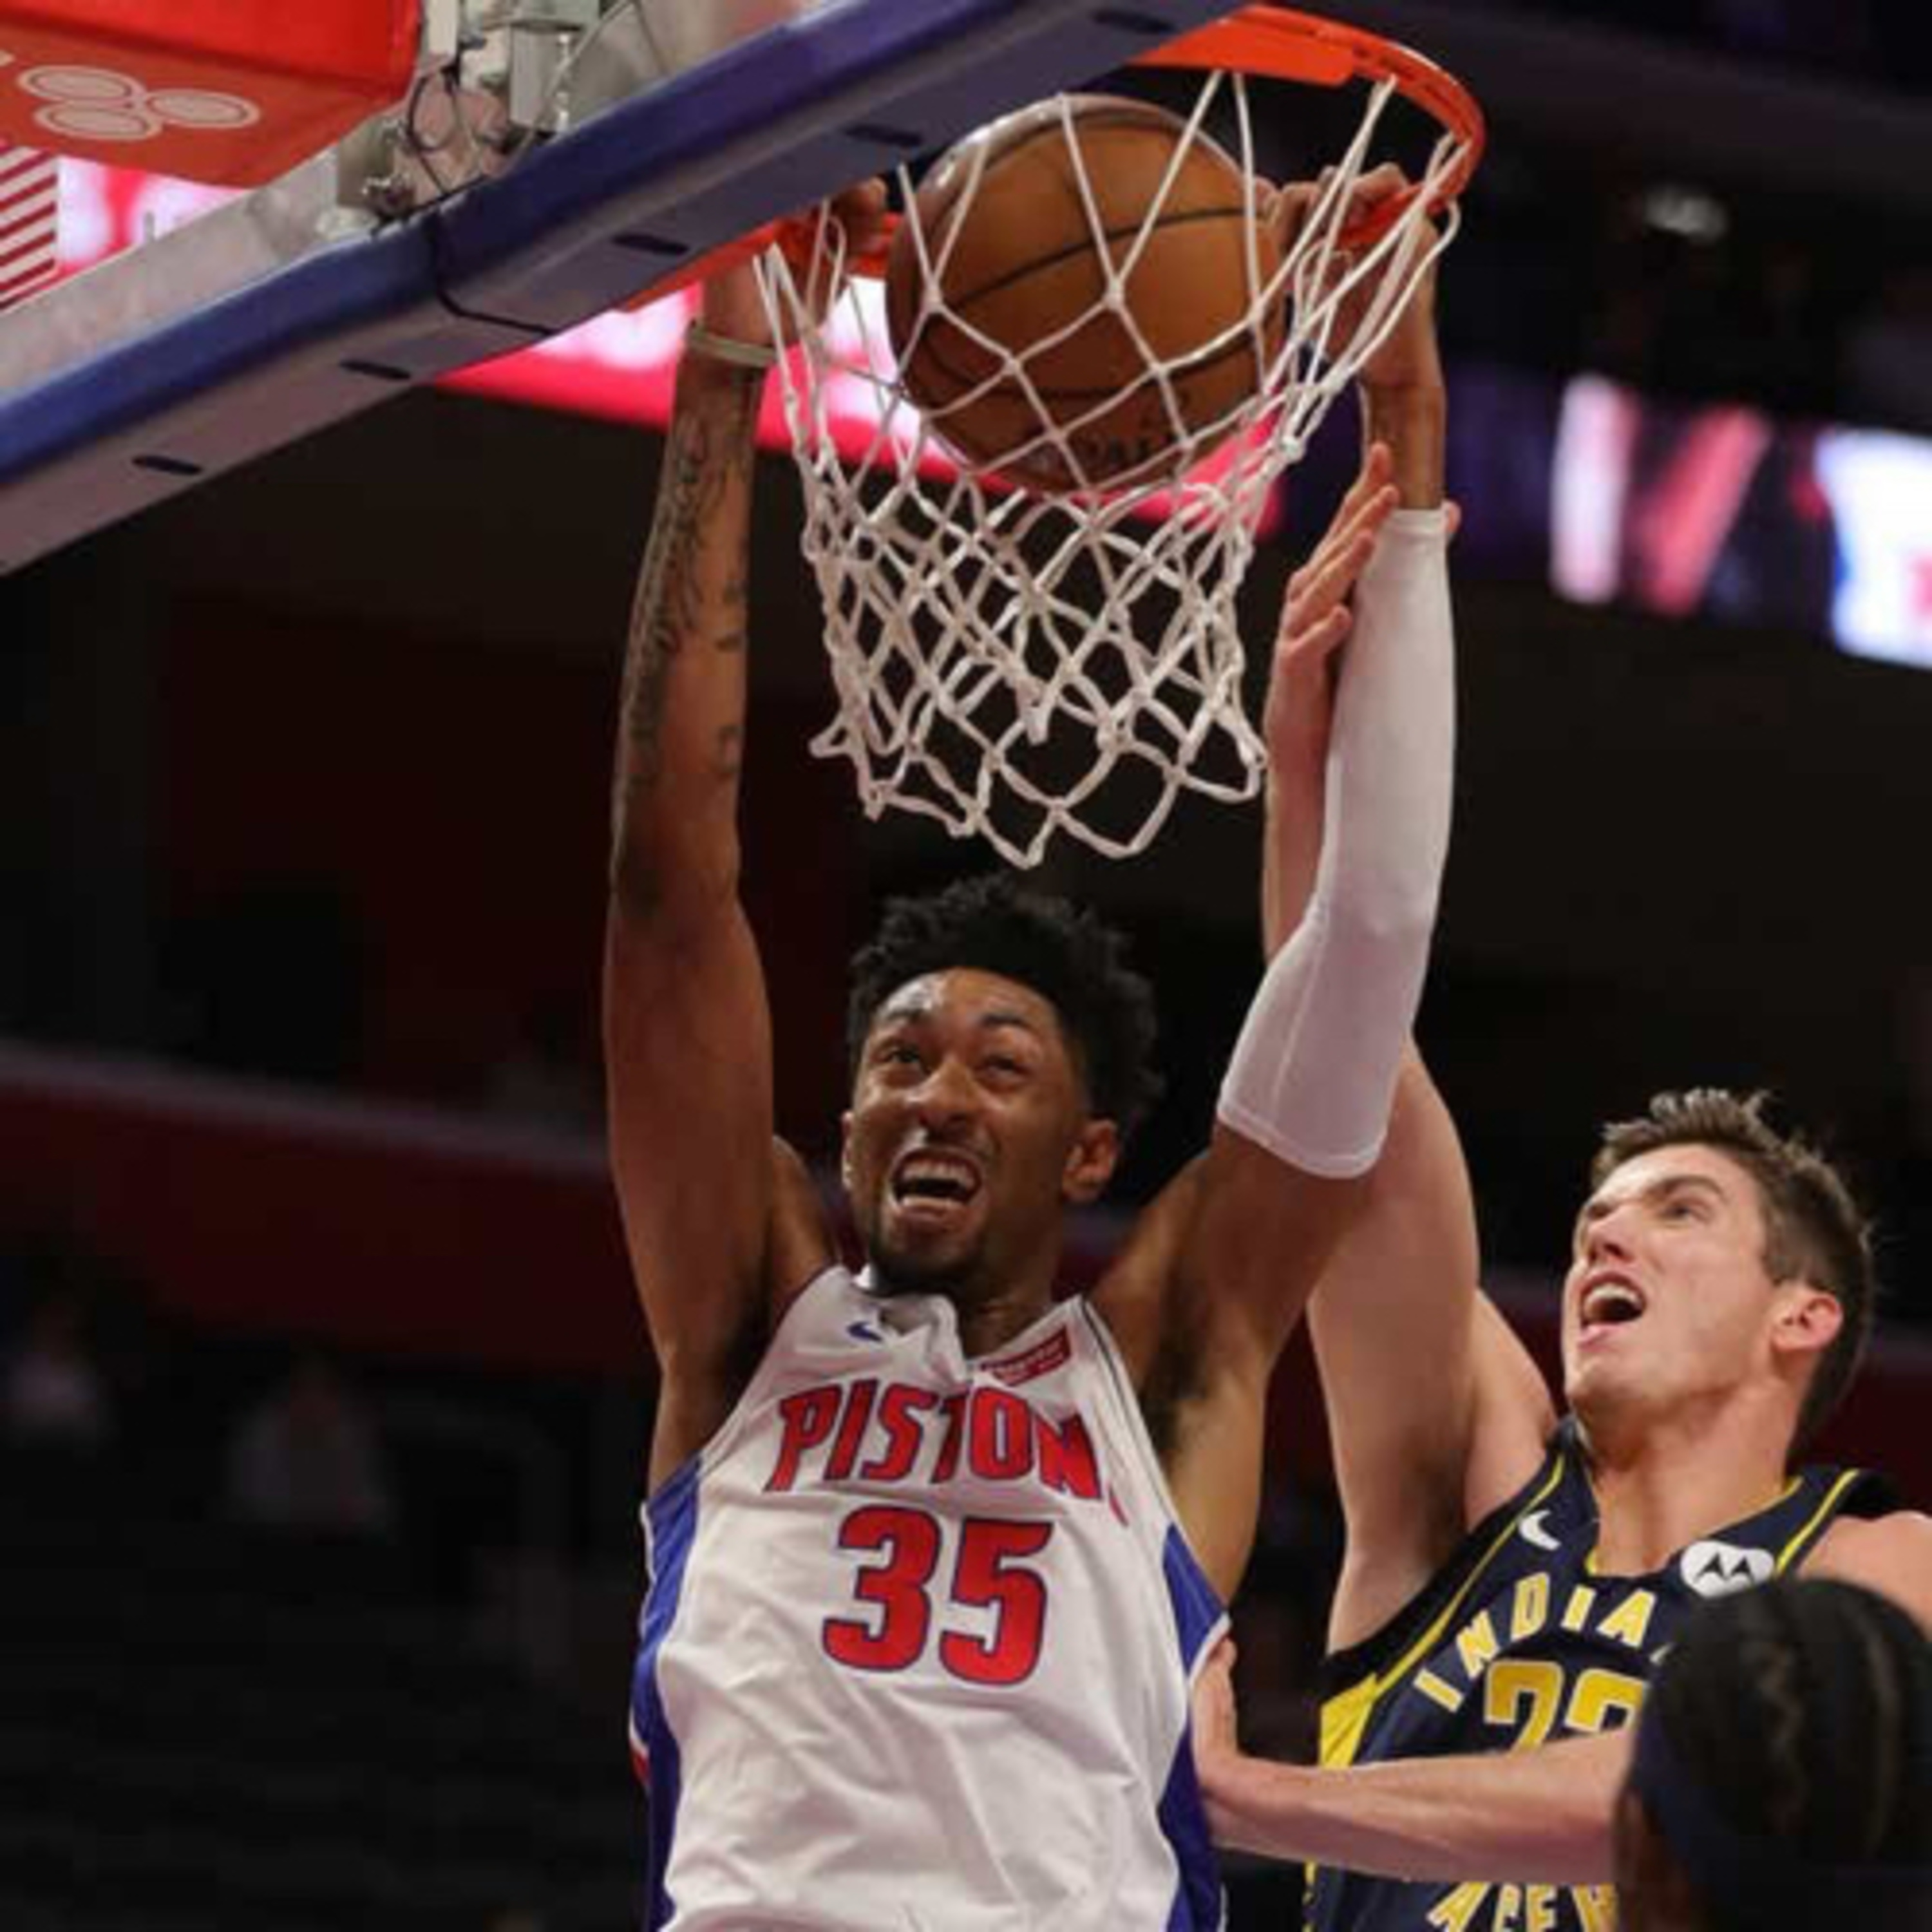 Pistons Win! 96-94 vs Pacers